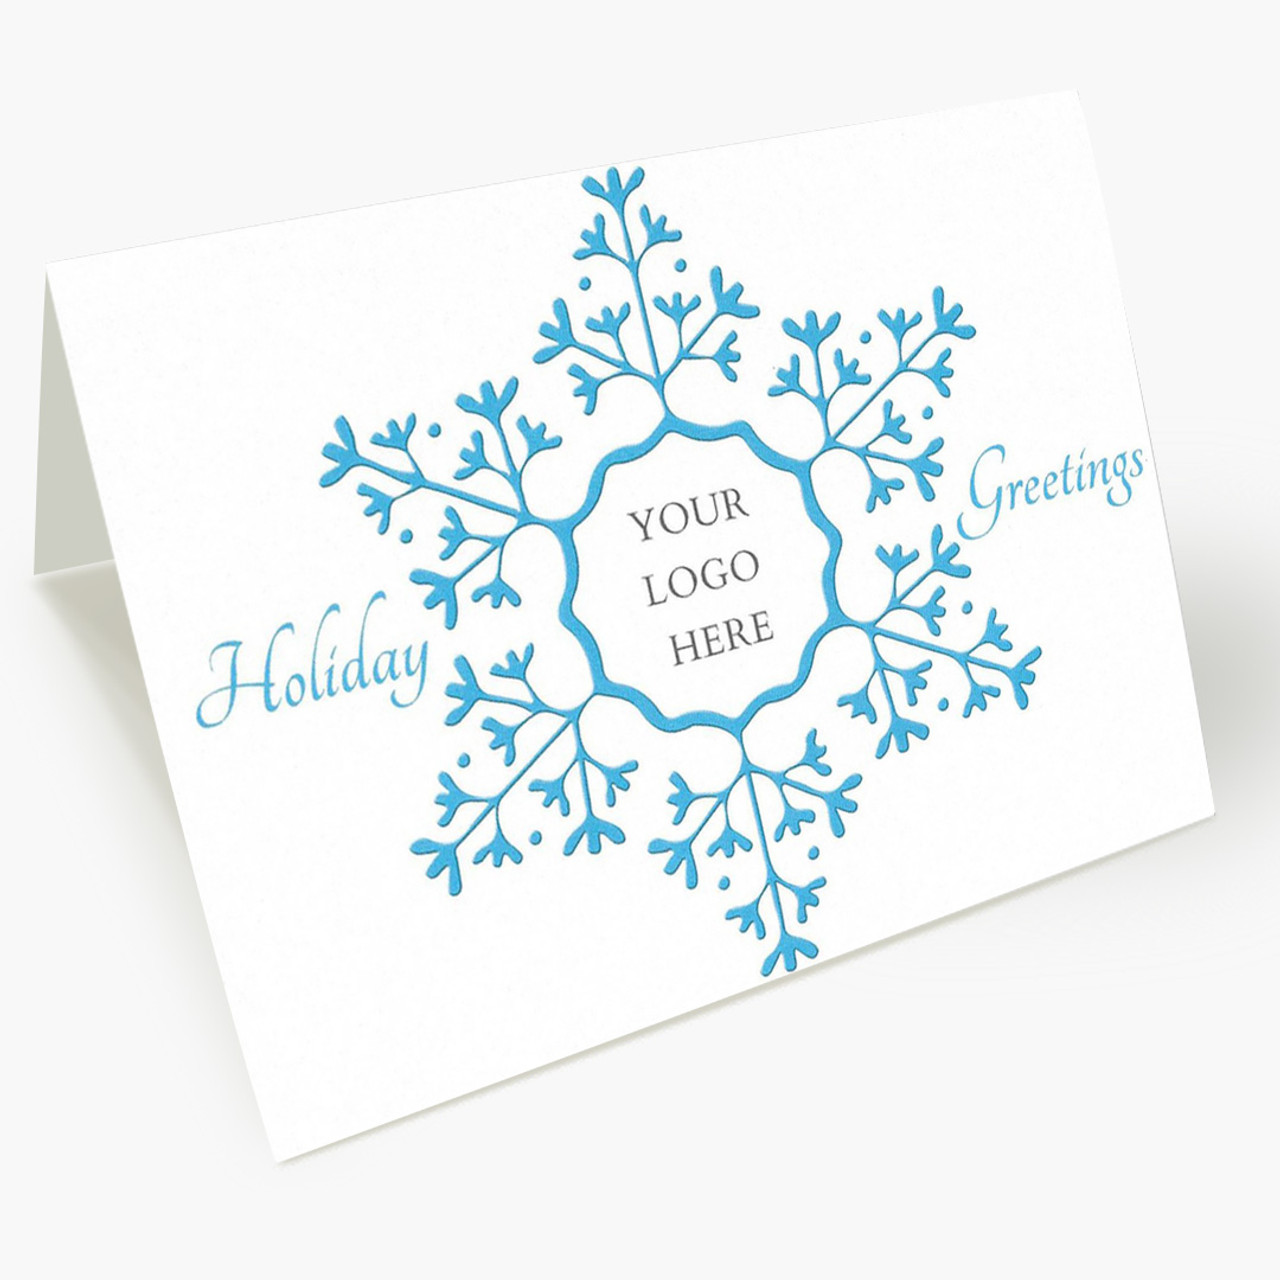 Snowflake Greetings Logo Christmas Card